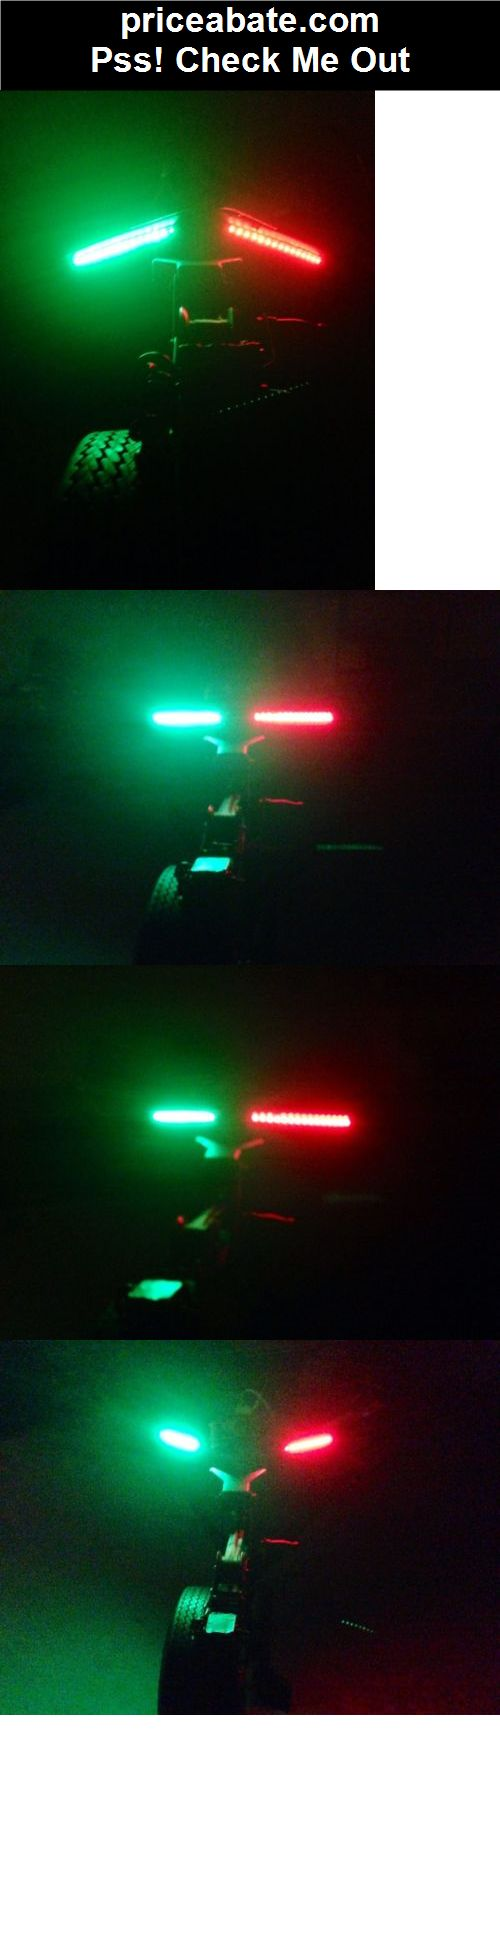 """Bow LED 5"""" WATERPROOF Red Green Navigation Light Marine Boat 12V Fishing Jon - #priceabate! BUY IT NOW ONLY $11.12"""